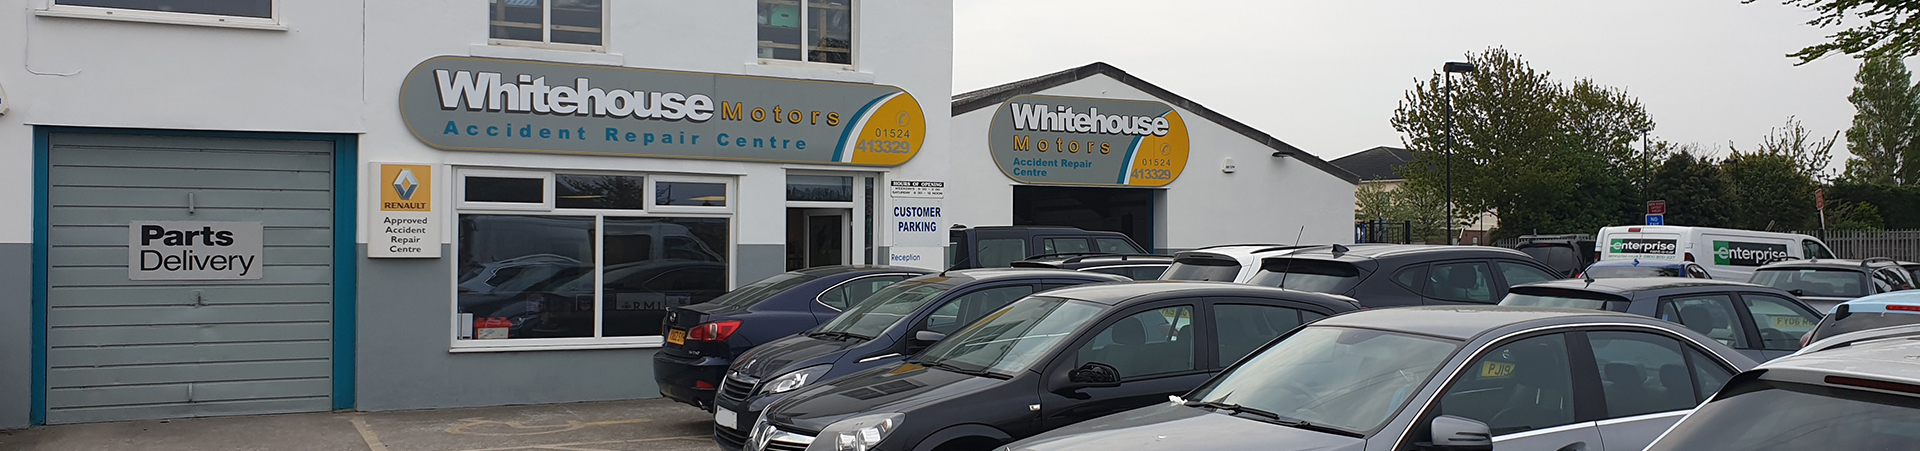 Whitehouse Motors - Accident Repair, Morecambe